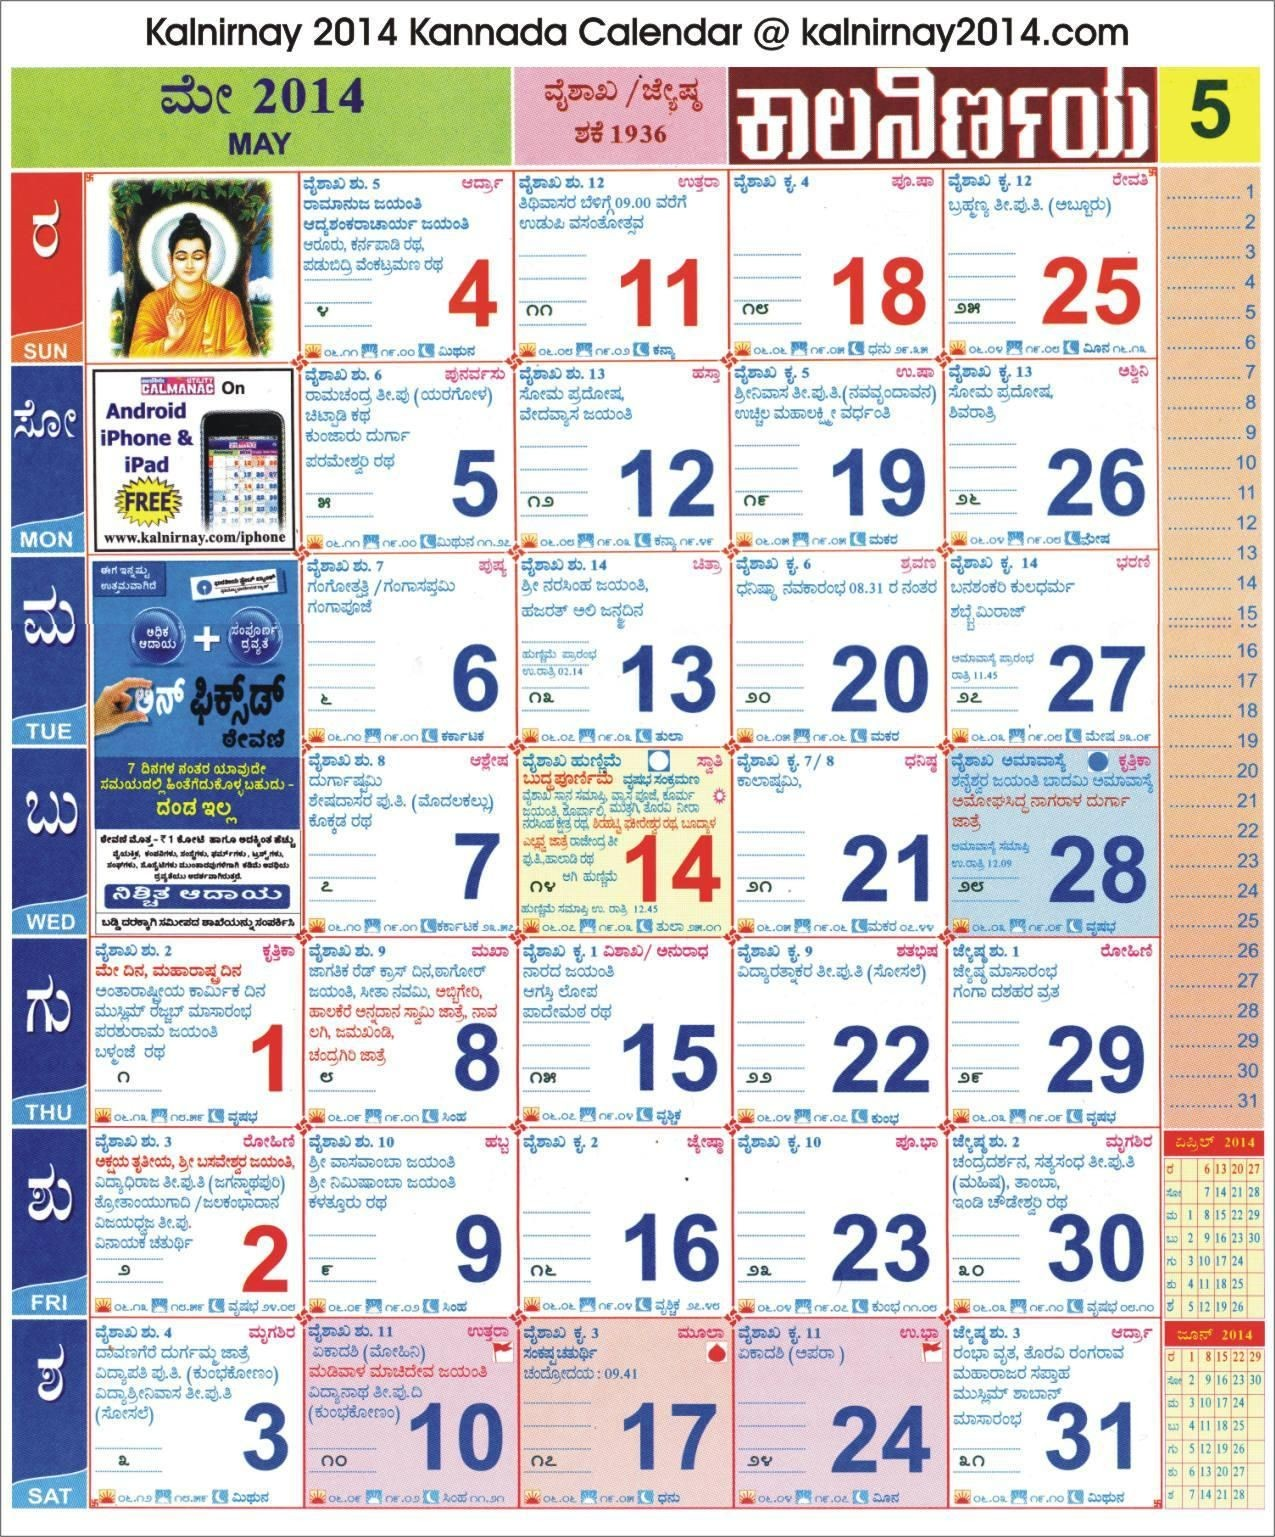 March 2018 Calendar Kalnirnay Más Recientes May 2014 Kannada Kalnirnay Calendar Of March 2018 Calendar Kalnirnay Más Recientes Kalender Vorlage Powerpoint 2017 Great Keynote Calendar Template